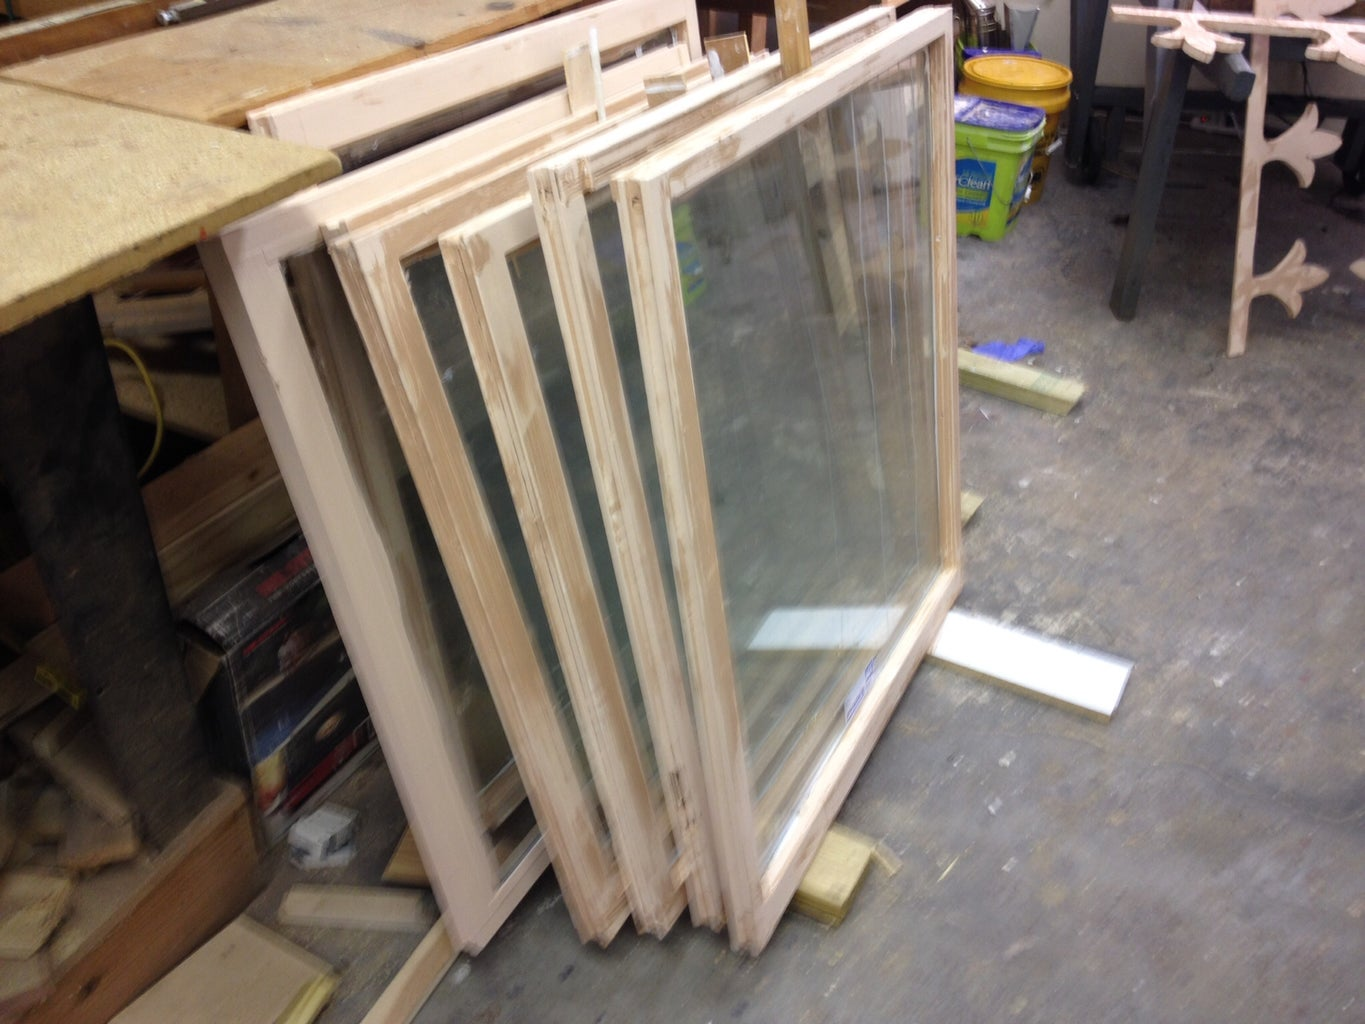 Preparing the Windows, Doors, and Trim Pieces for Installation